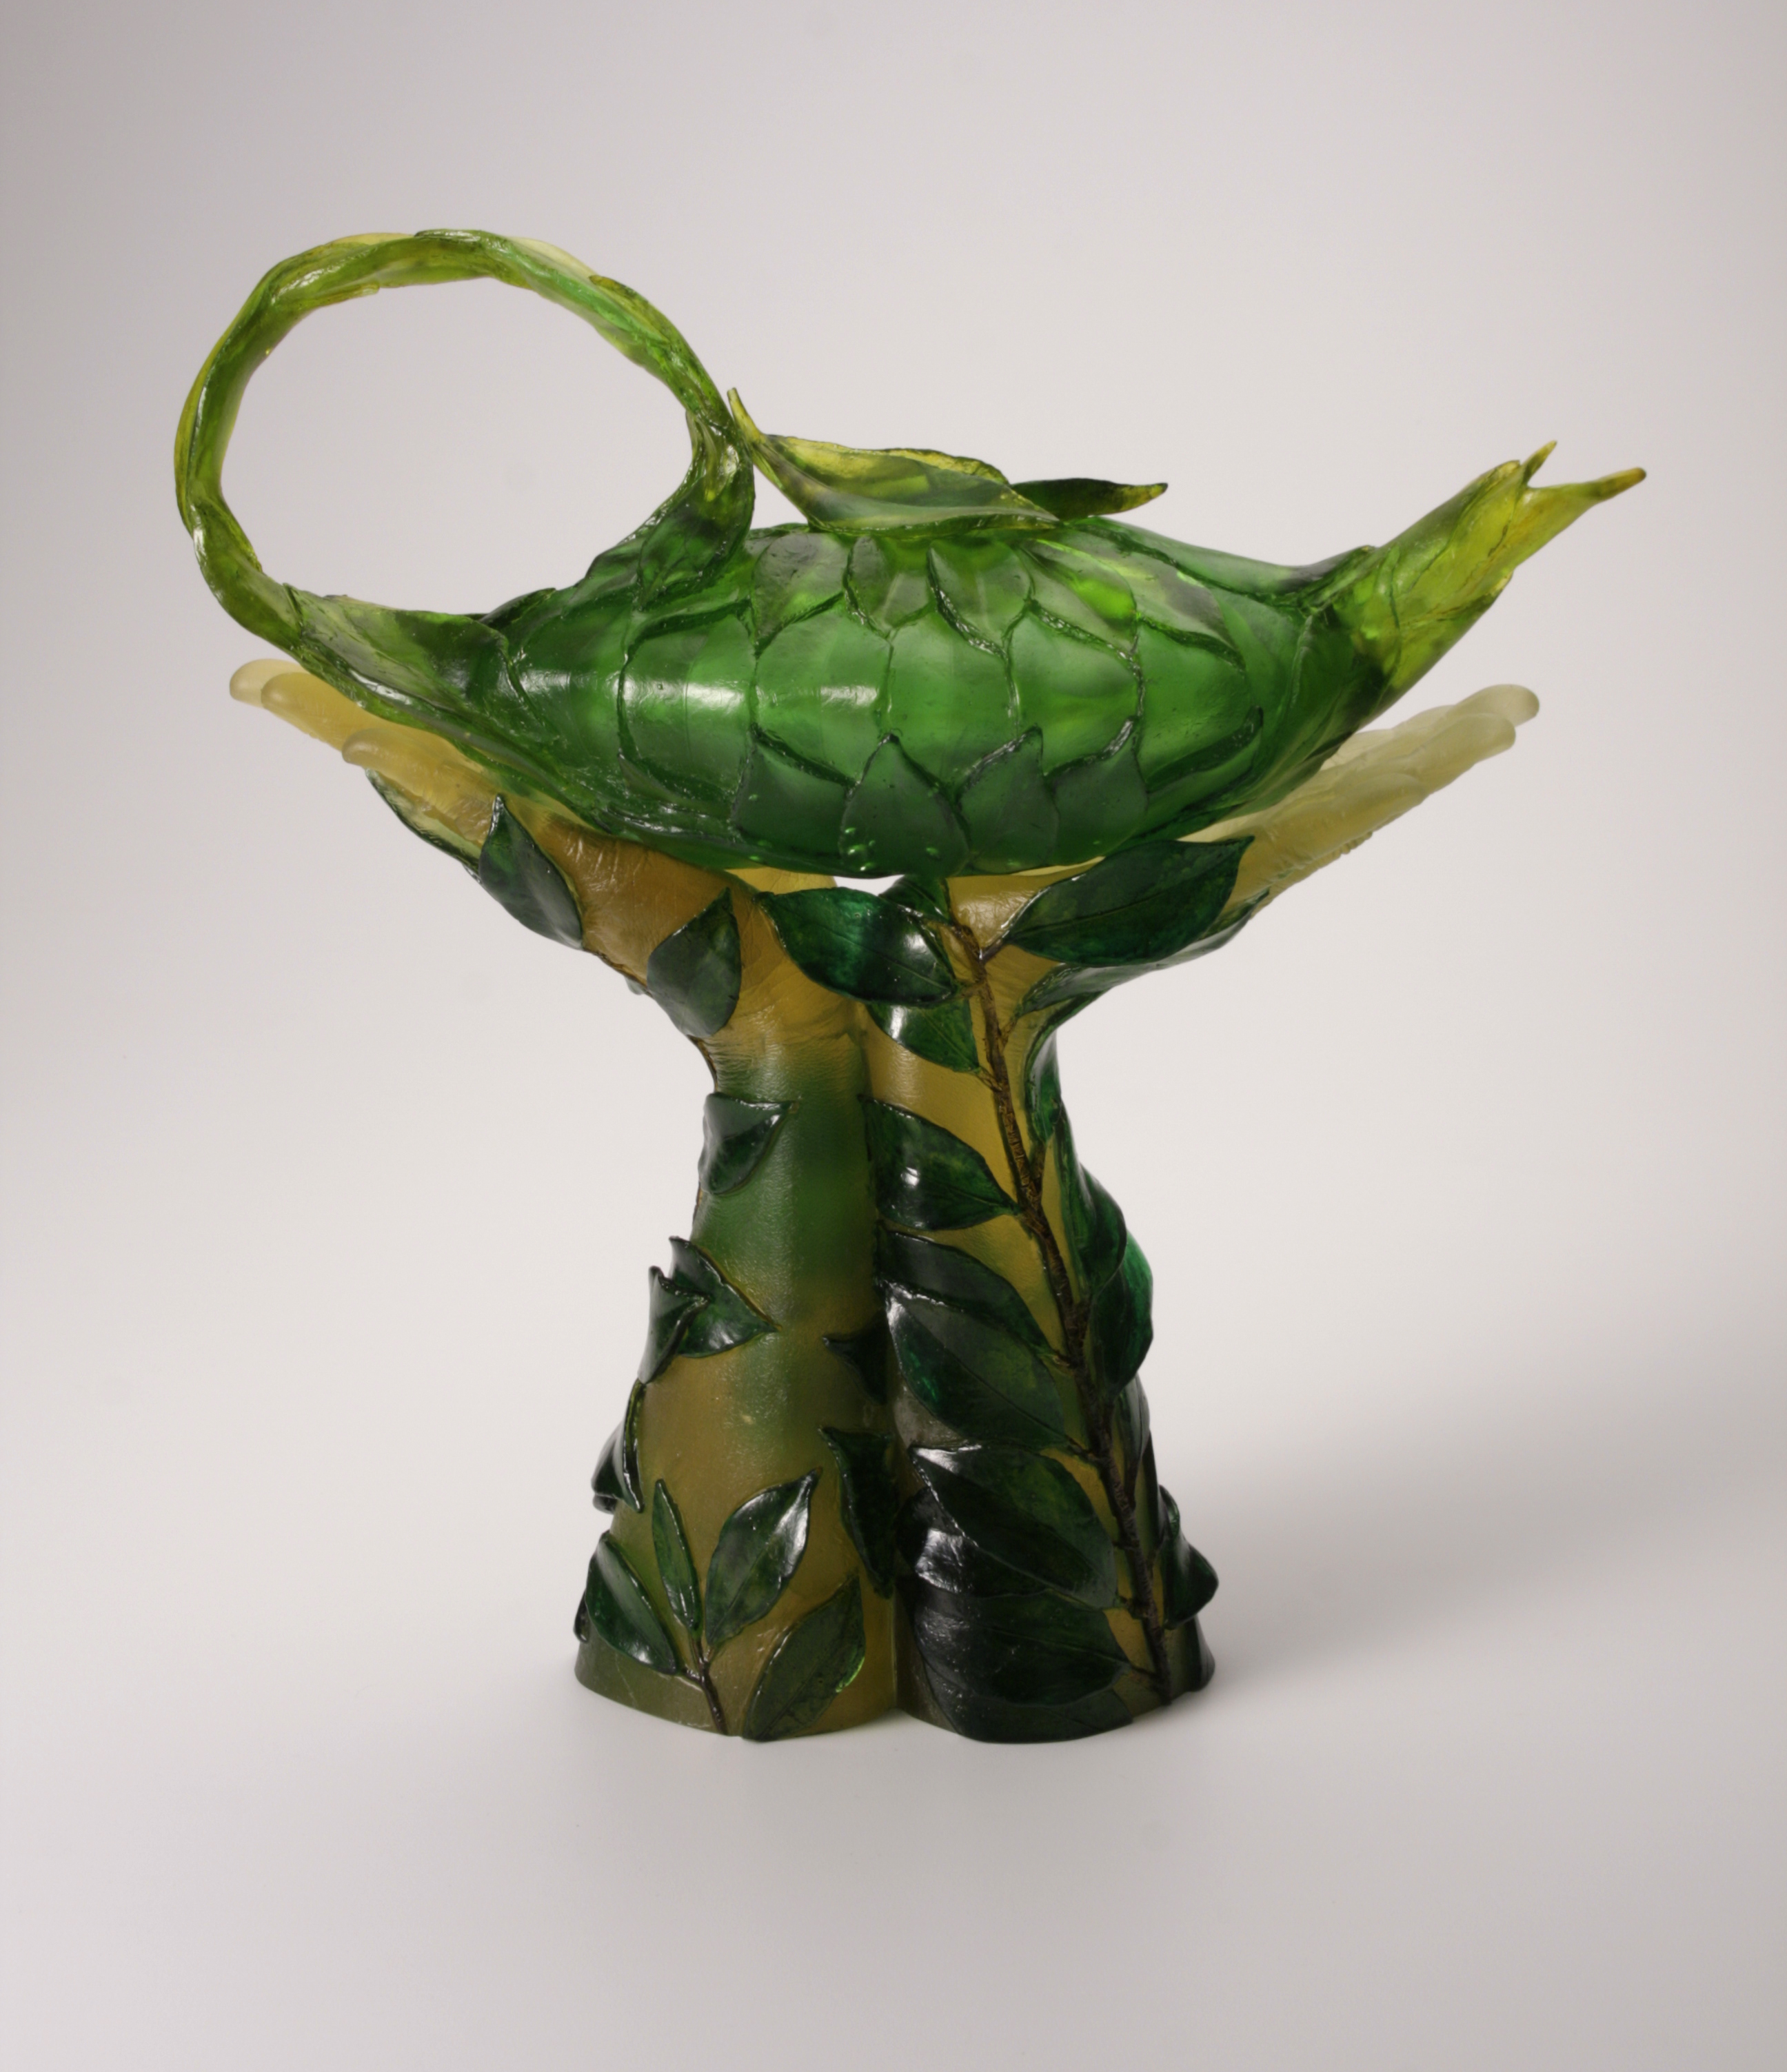 Sculpture of arms with tea vines wrapping them, holding a teapot made of leaves.